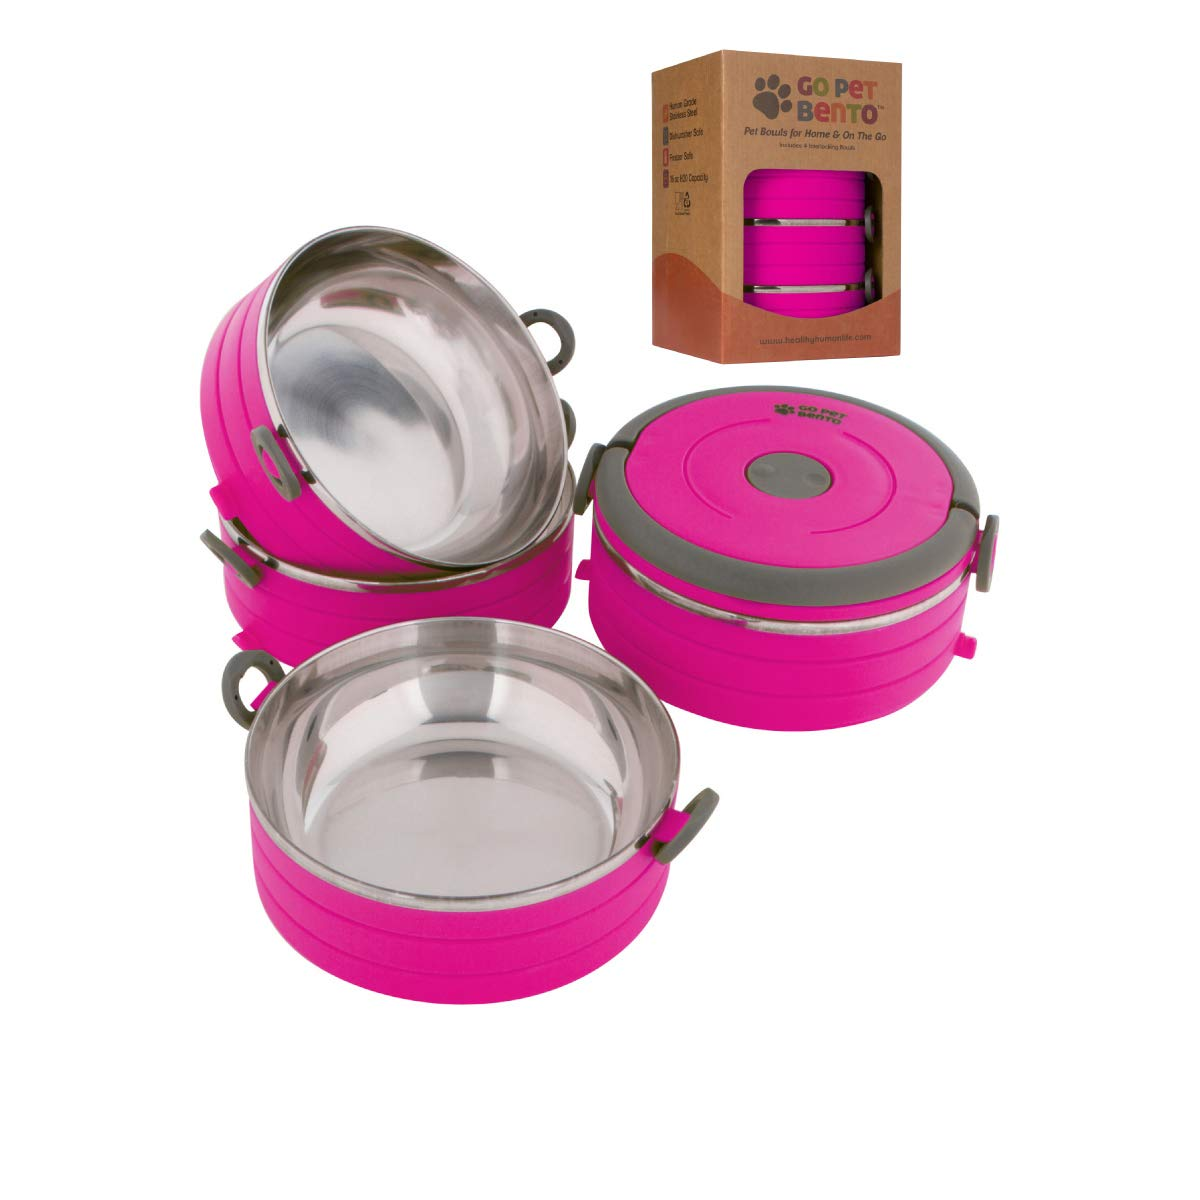 Healthy Human Portable Dog & Pet Travel Bowls with Lid - Human Grade Stainless Steel - Ideal for Food & Water - Pink - 4 Bowl Set by Healthy Human